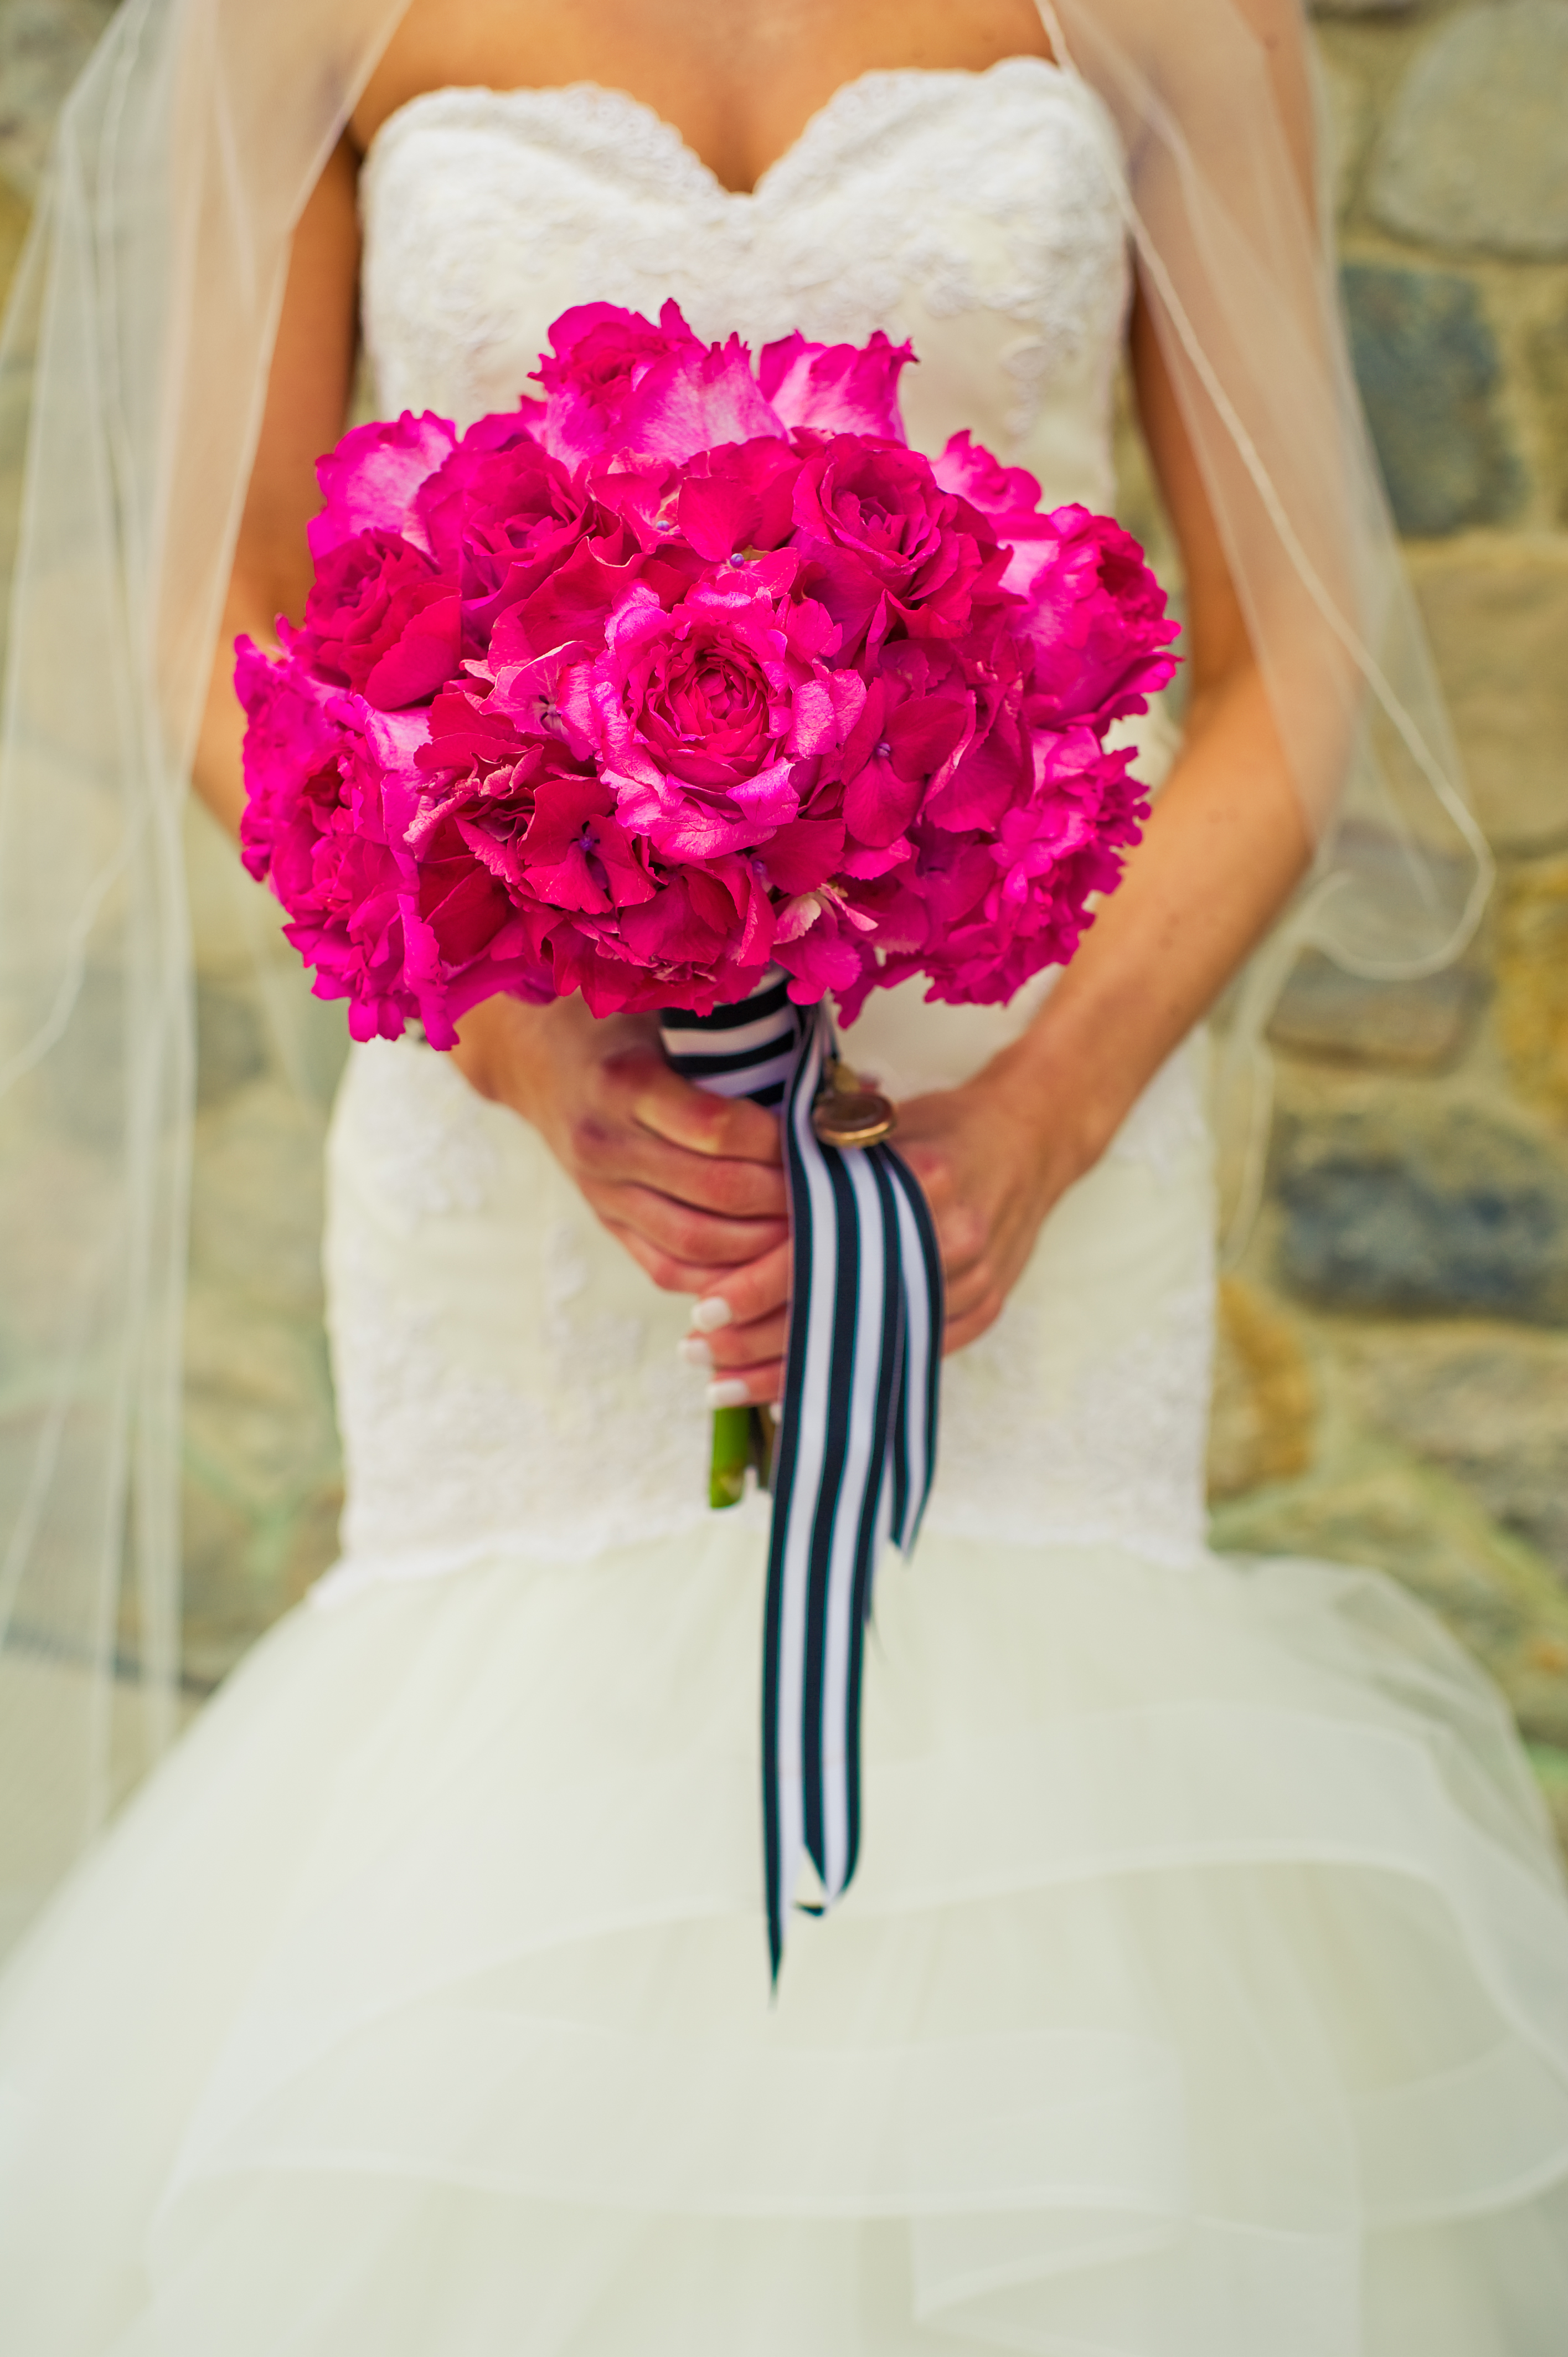 Flowers & Decor, Real Weddings, Wedding Style, pink, Bride Bouquets, Modern Real Weddings, Midwest Real Weddings, Modern Weddings, michigan weddings, michigan real weddings